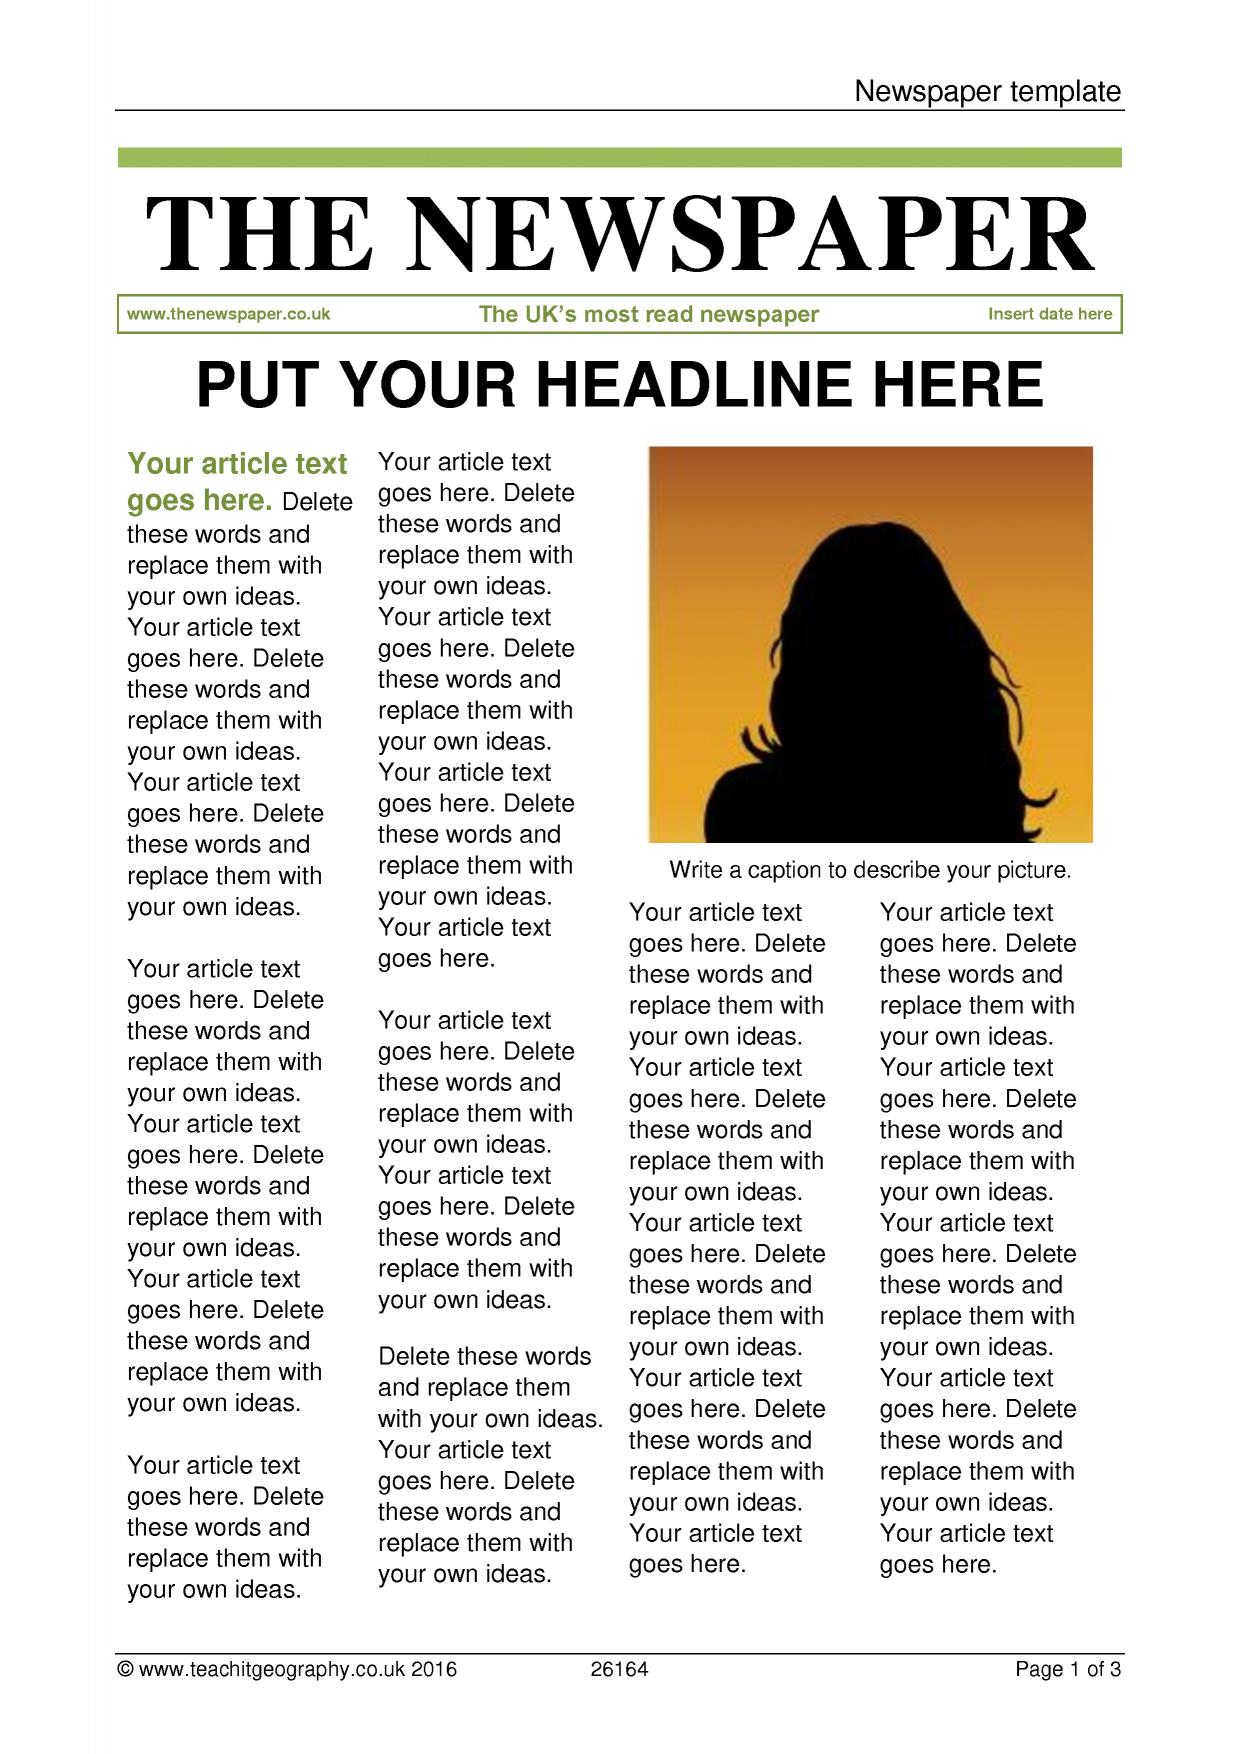 How to Write a Great Newspaper Article